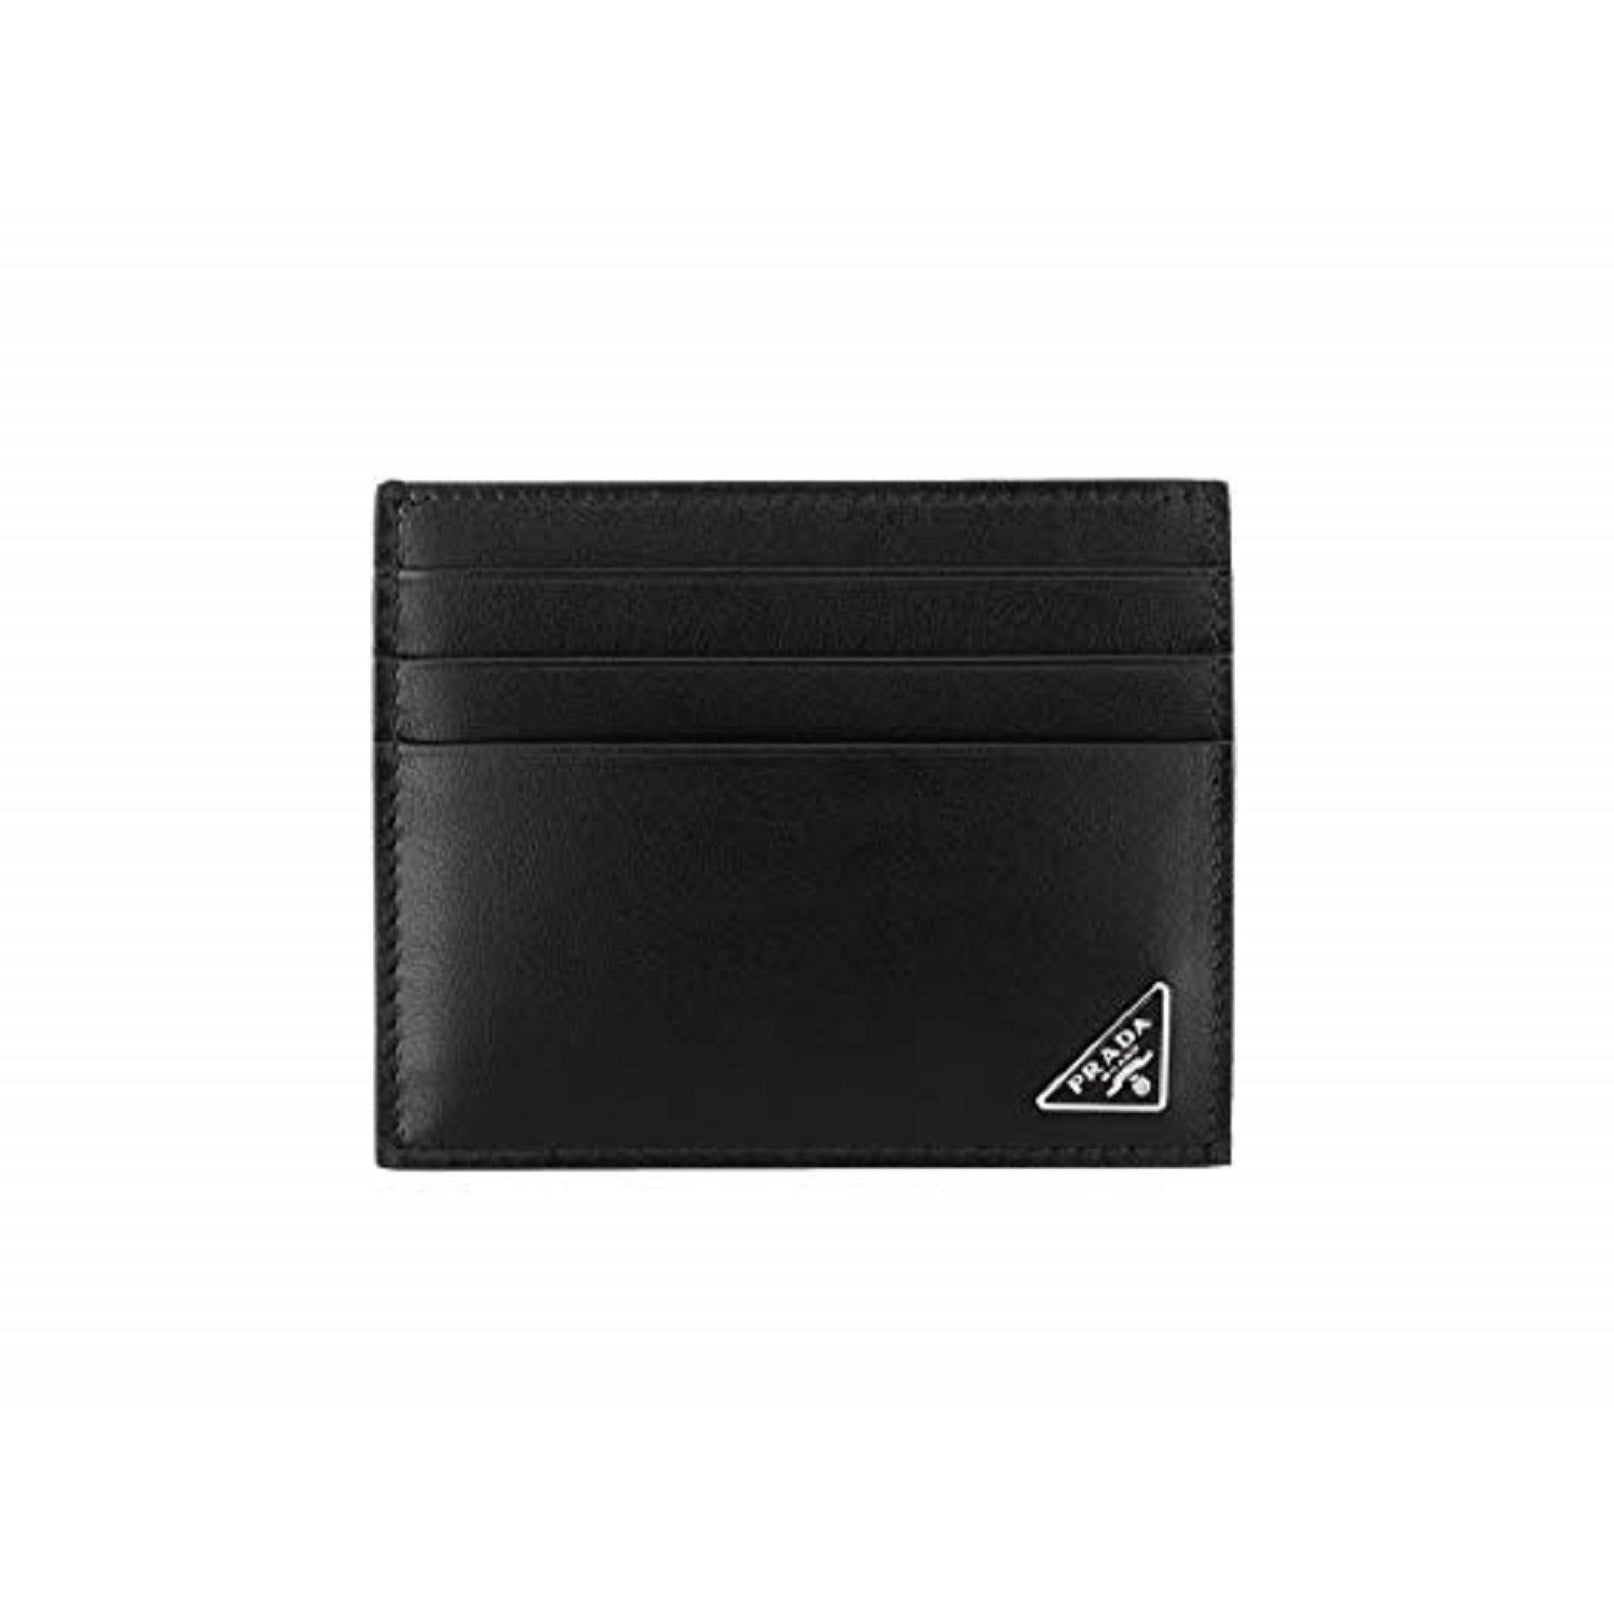 Prada Nero Black Vitello Leather Card Holder with Iconic Triangle Logo 2MC223